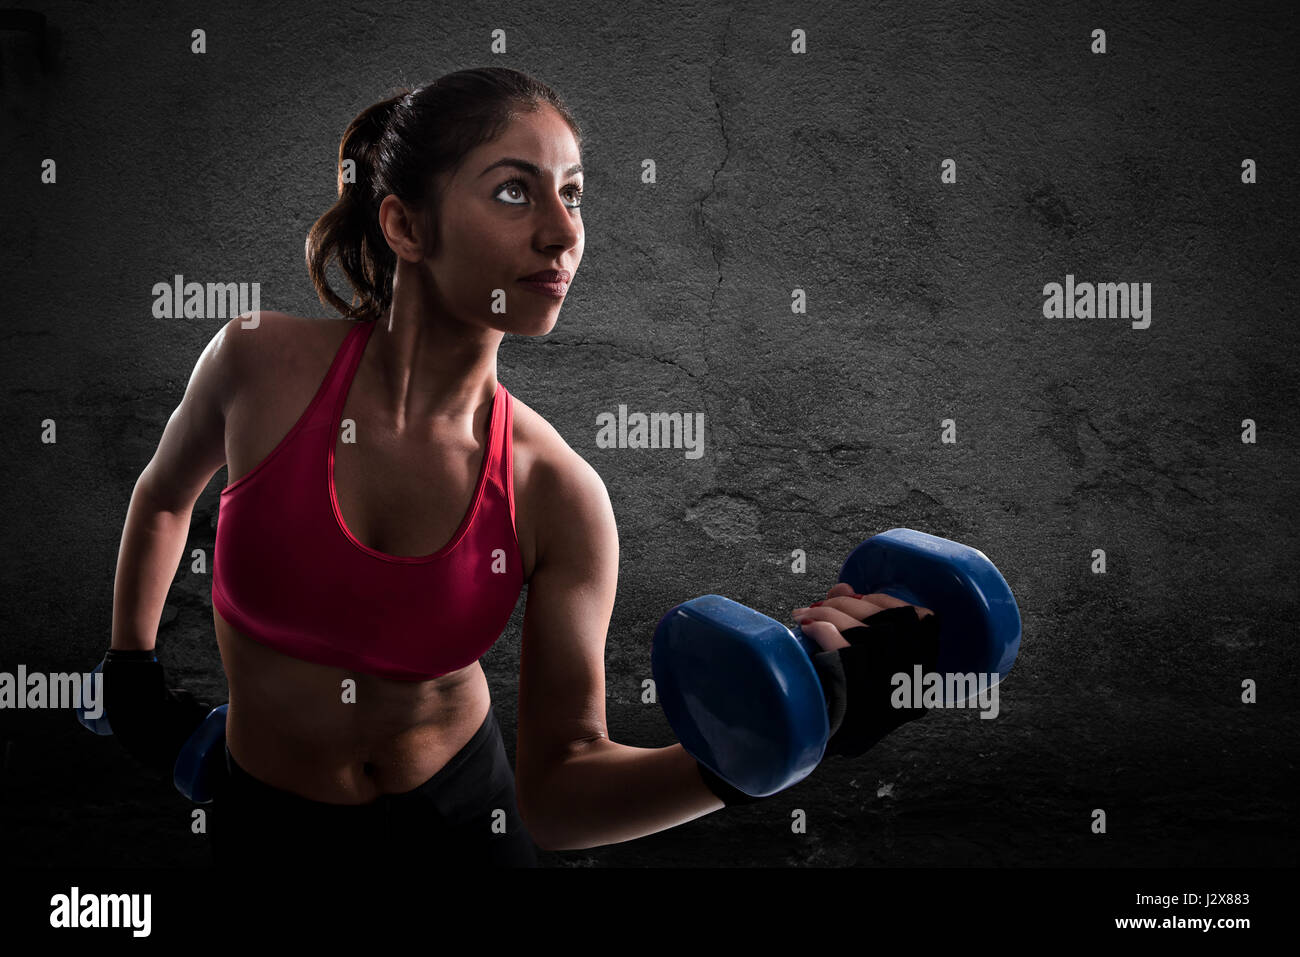 Athletic muscular woman - Stock Image